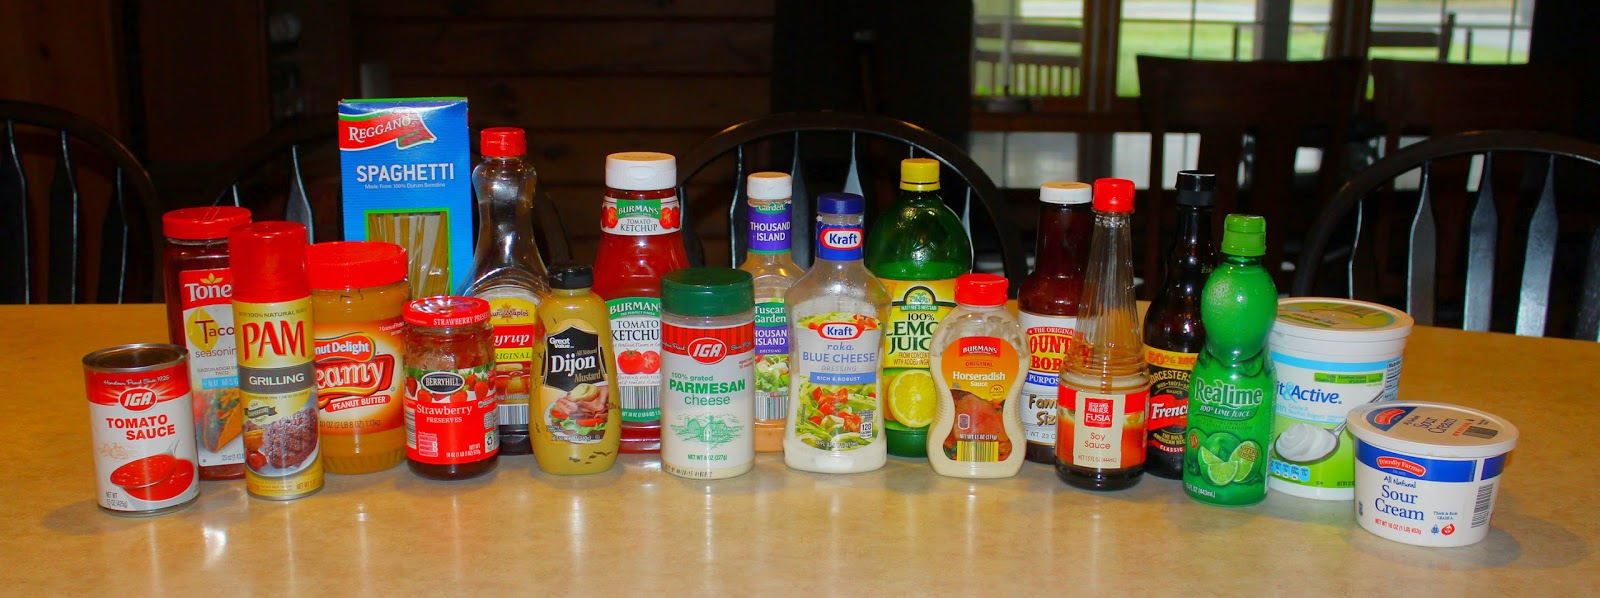 blog kitchenbefore - Cooking Spray